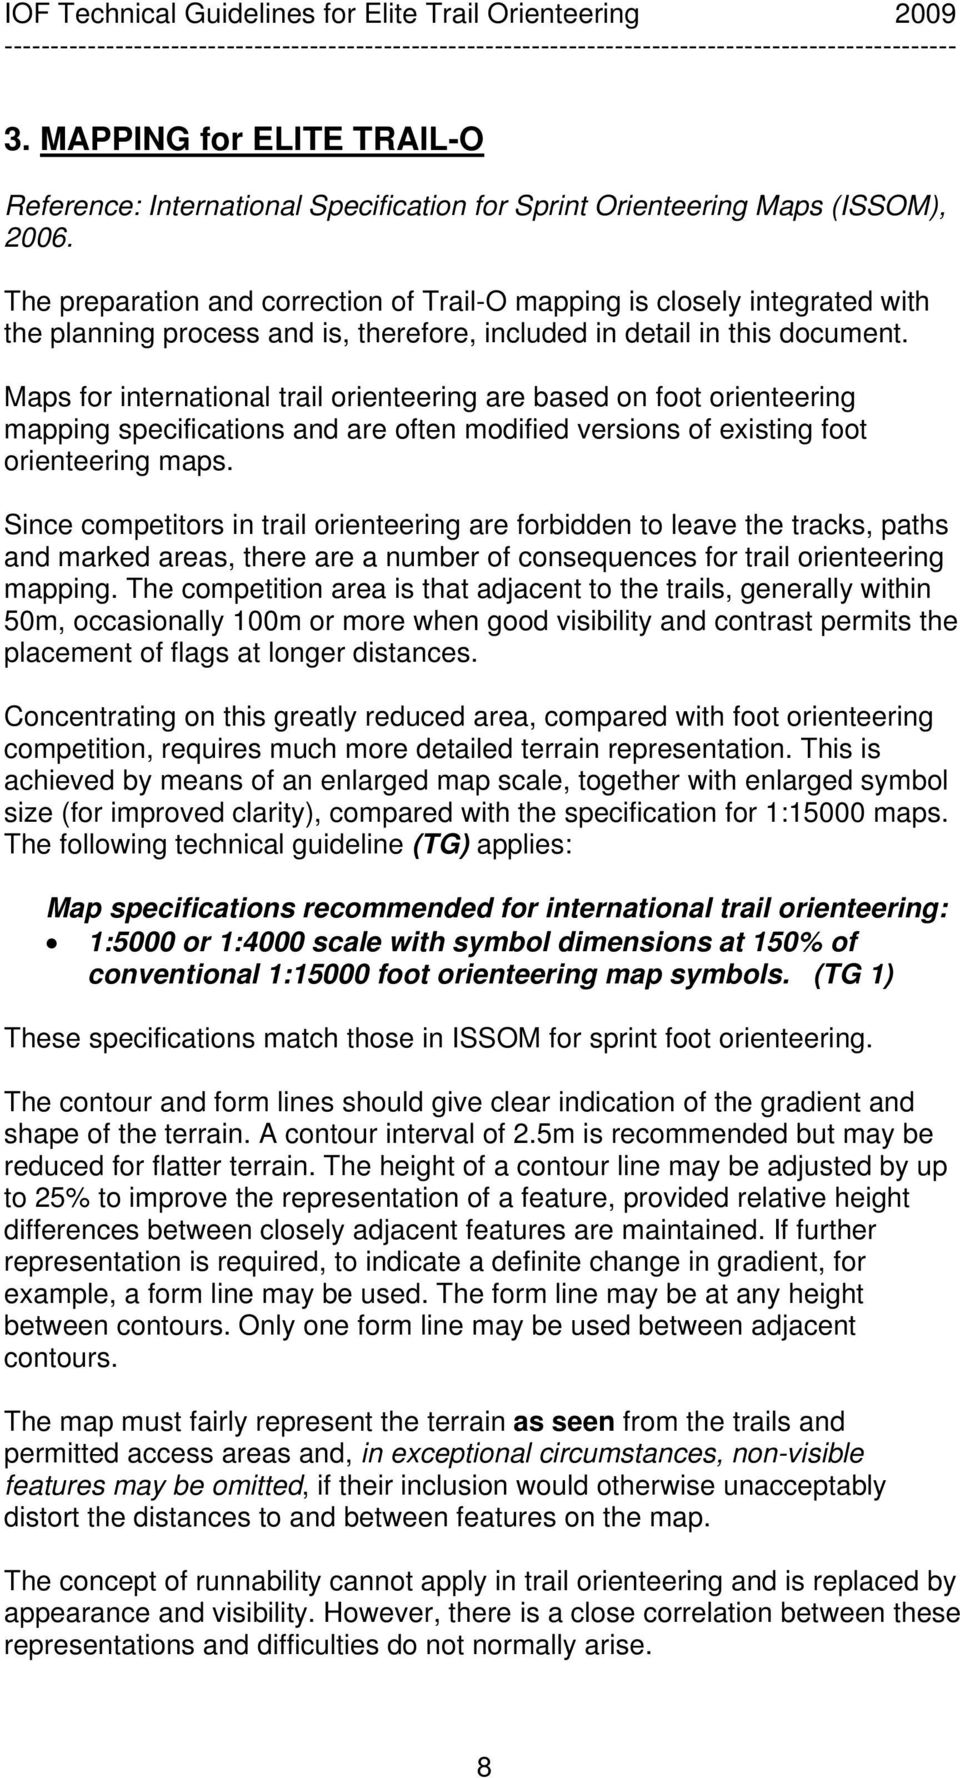 Maps for international trail orienteering are based on foot orienteering mapping specifications and are often modified versions of existing foot orienteering maps.